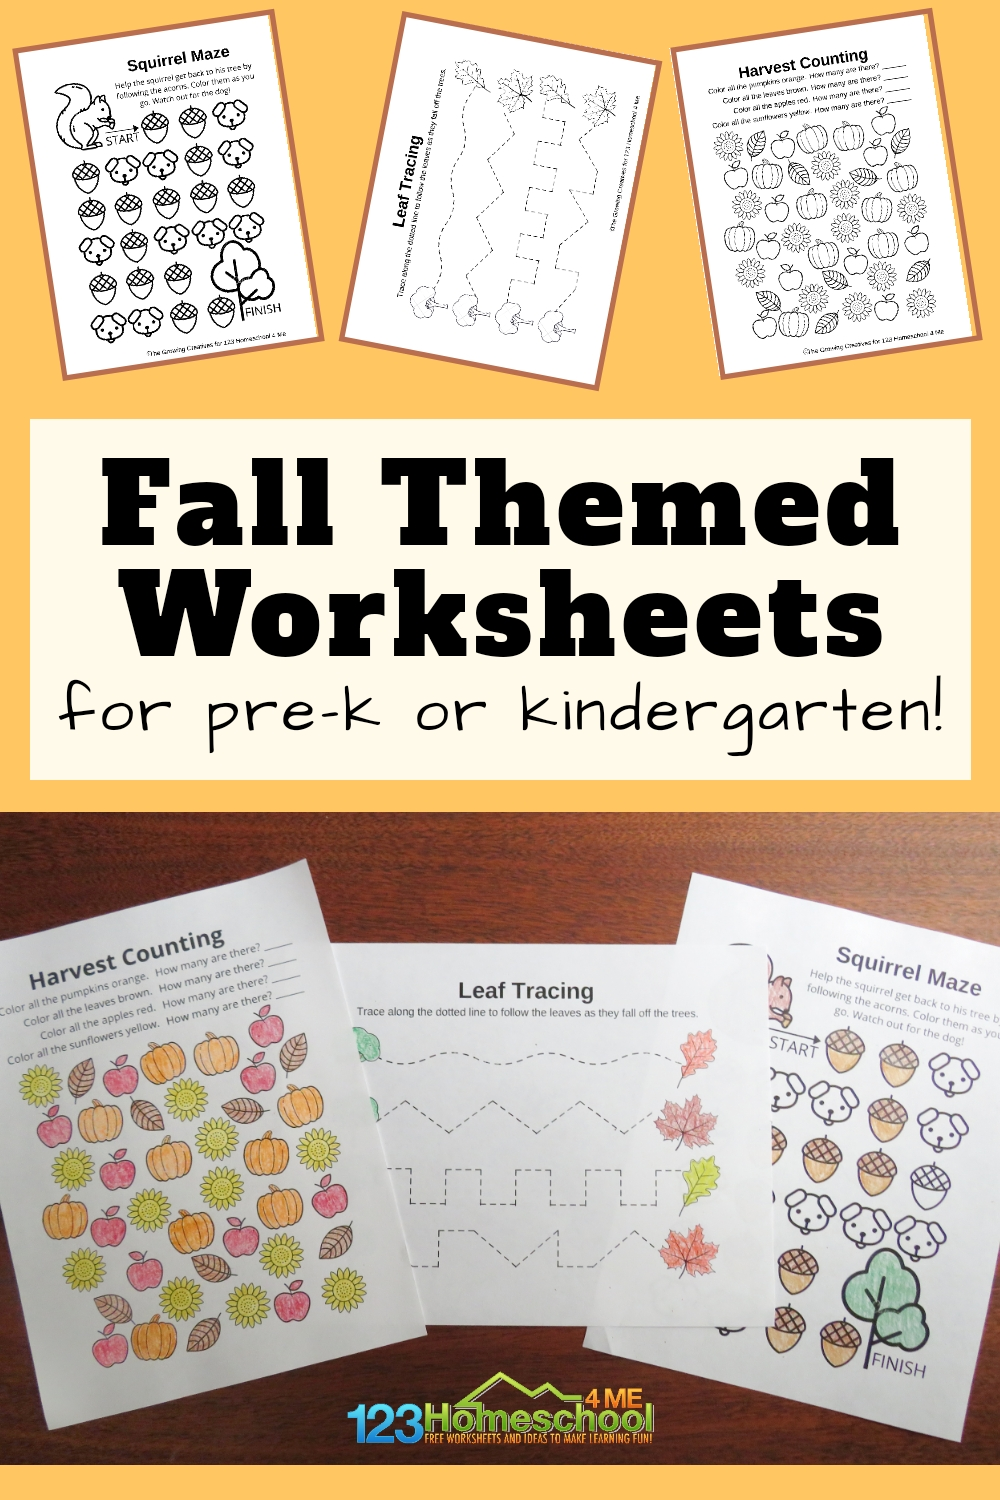 Teaching around a theme can make the learning process a lot easier. These fall worksheets for preschoolers are the perfect way to work on various concepts for young children this fall and autumn season. Simply download pdf file and practice counting, tracing, coloring, and problem solving skillswith these free printable autumn worksheets for preschool childrenin September, October, and November.